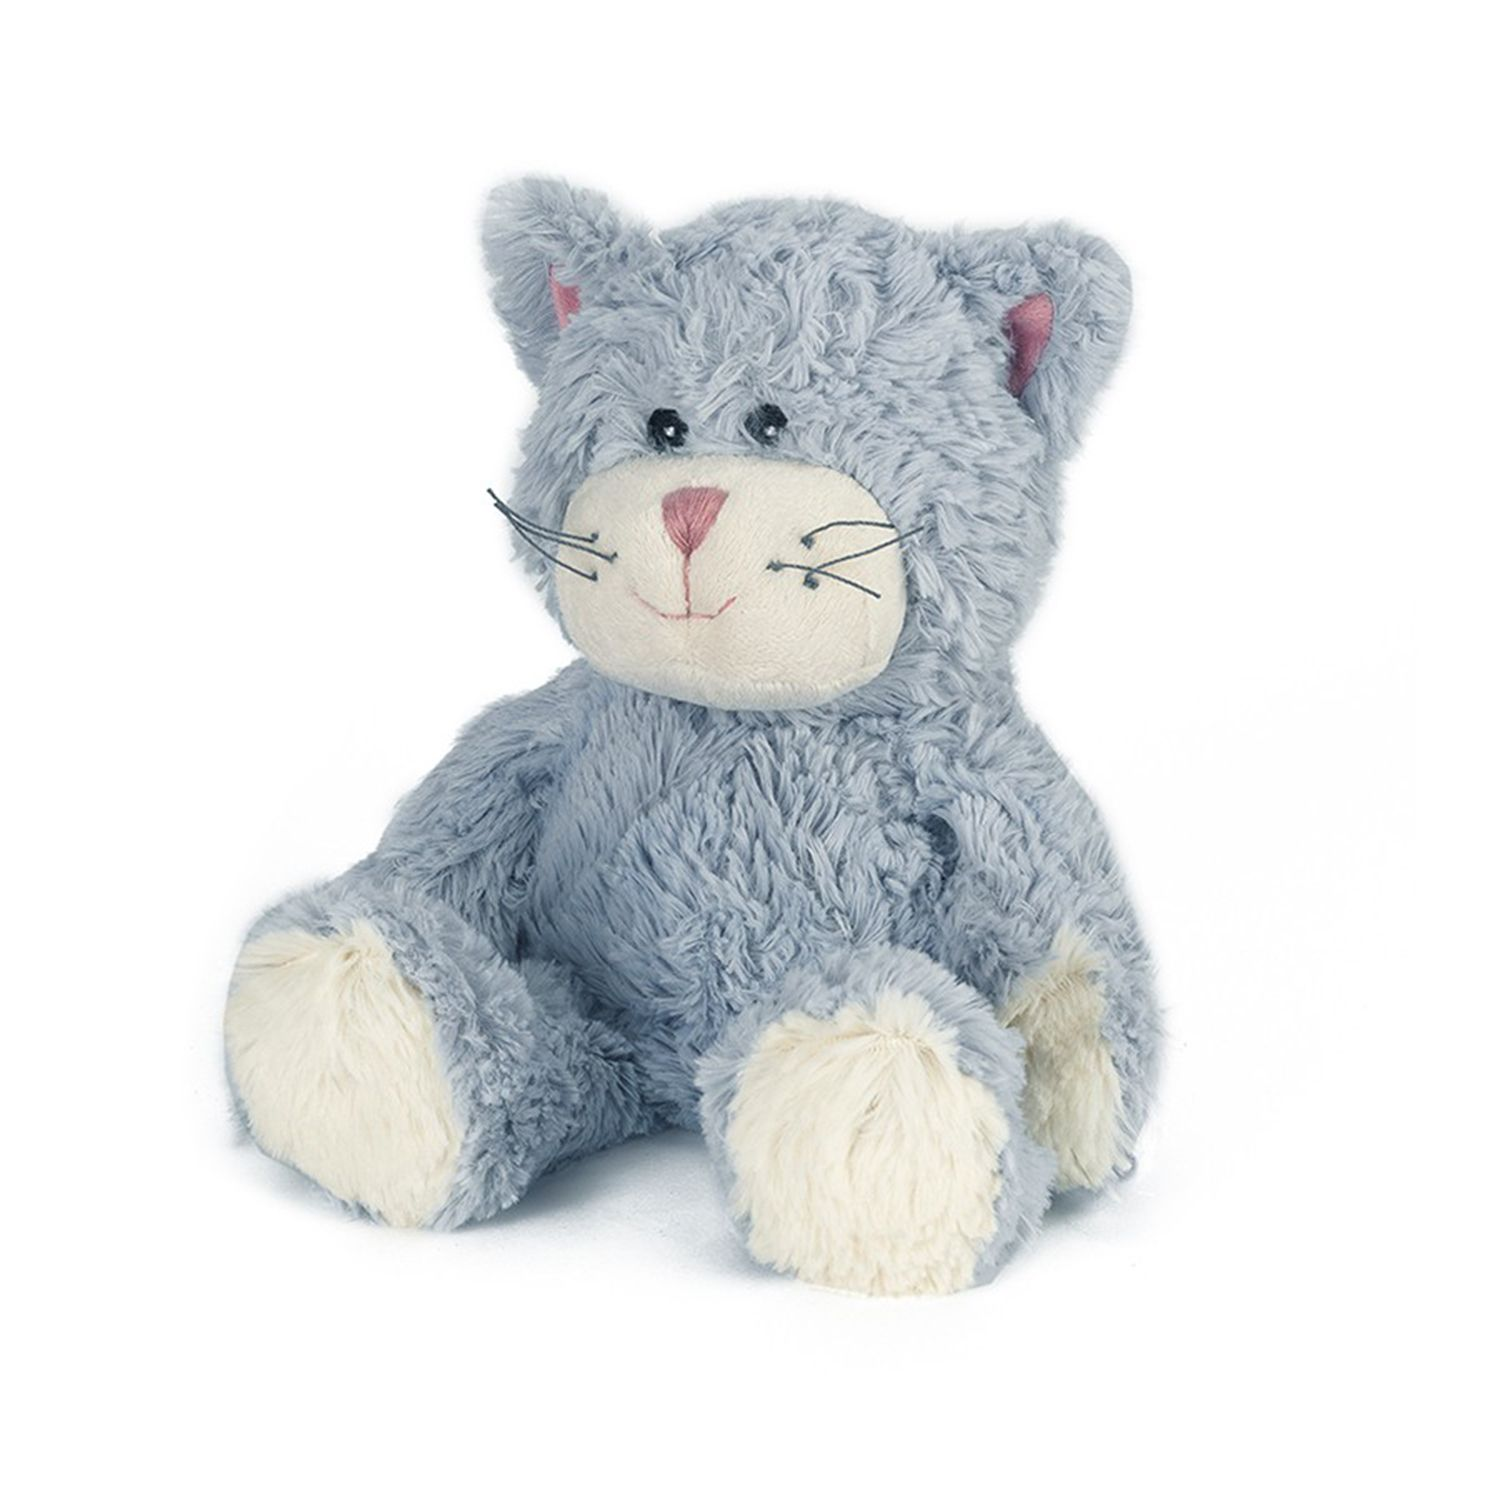 Warmies Plush Blue Cat Microwavable Soft Toy (With images